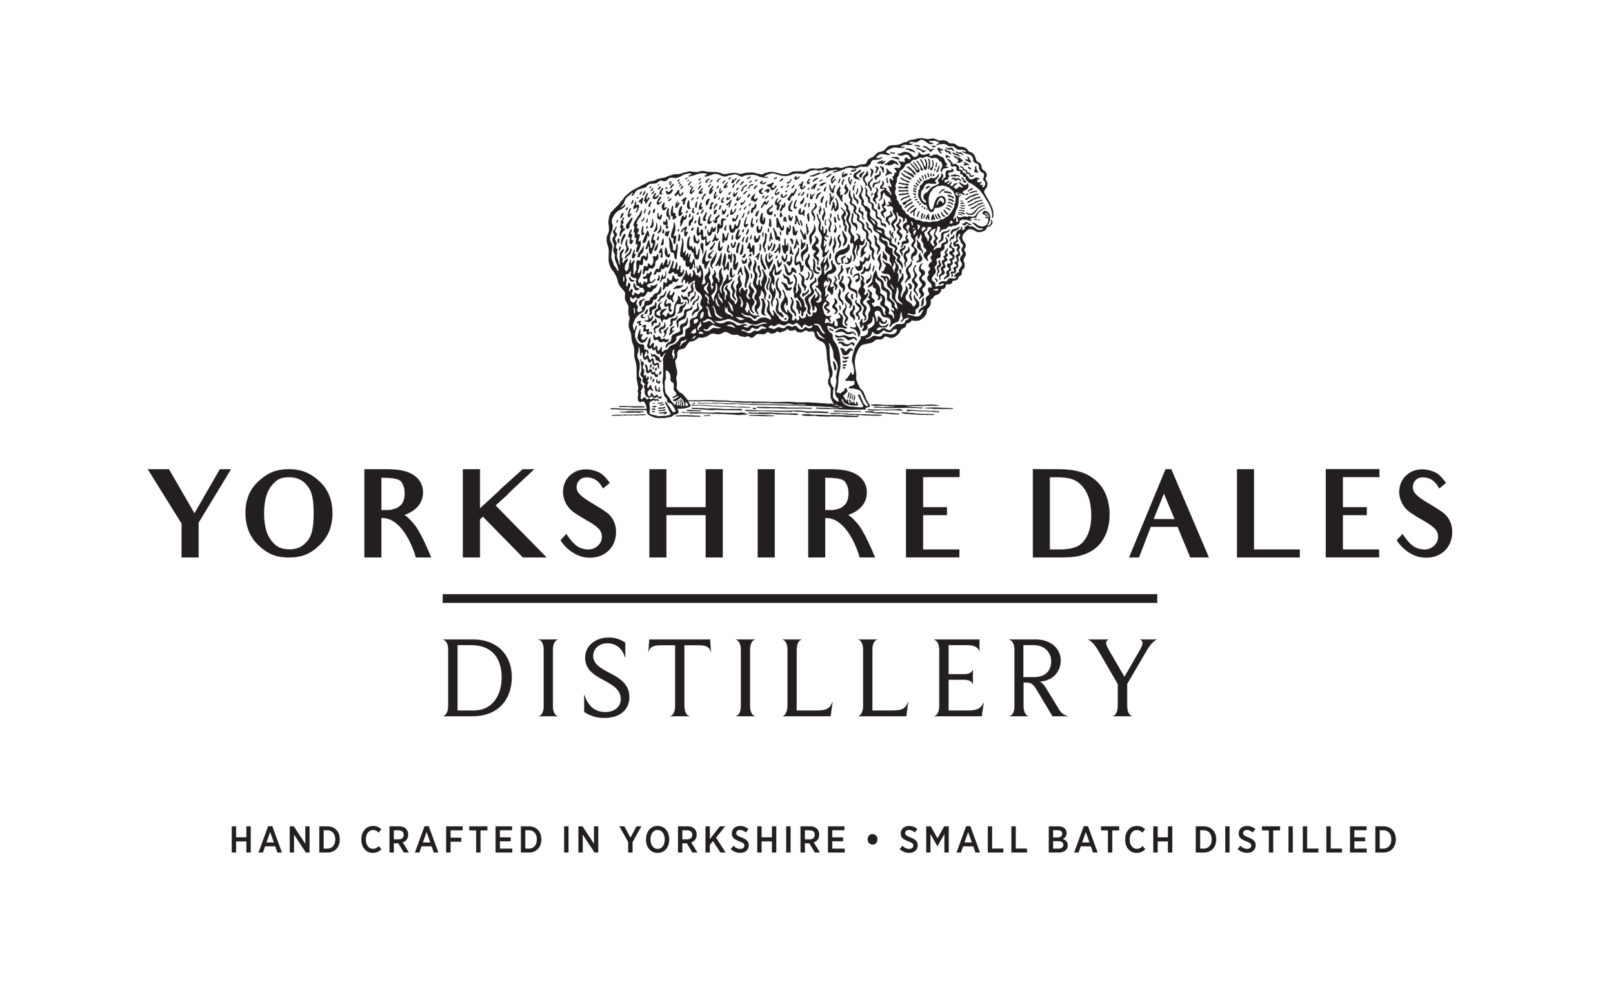 Yorkshire dales distillery